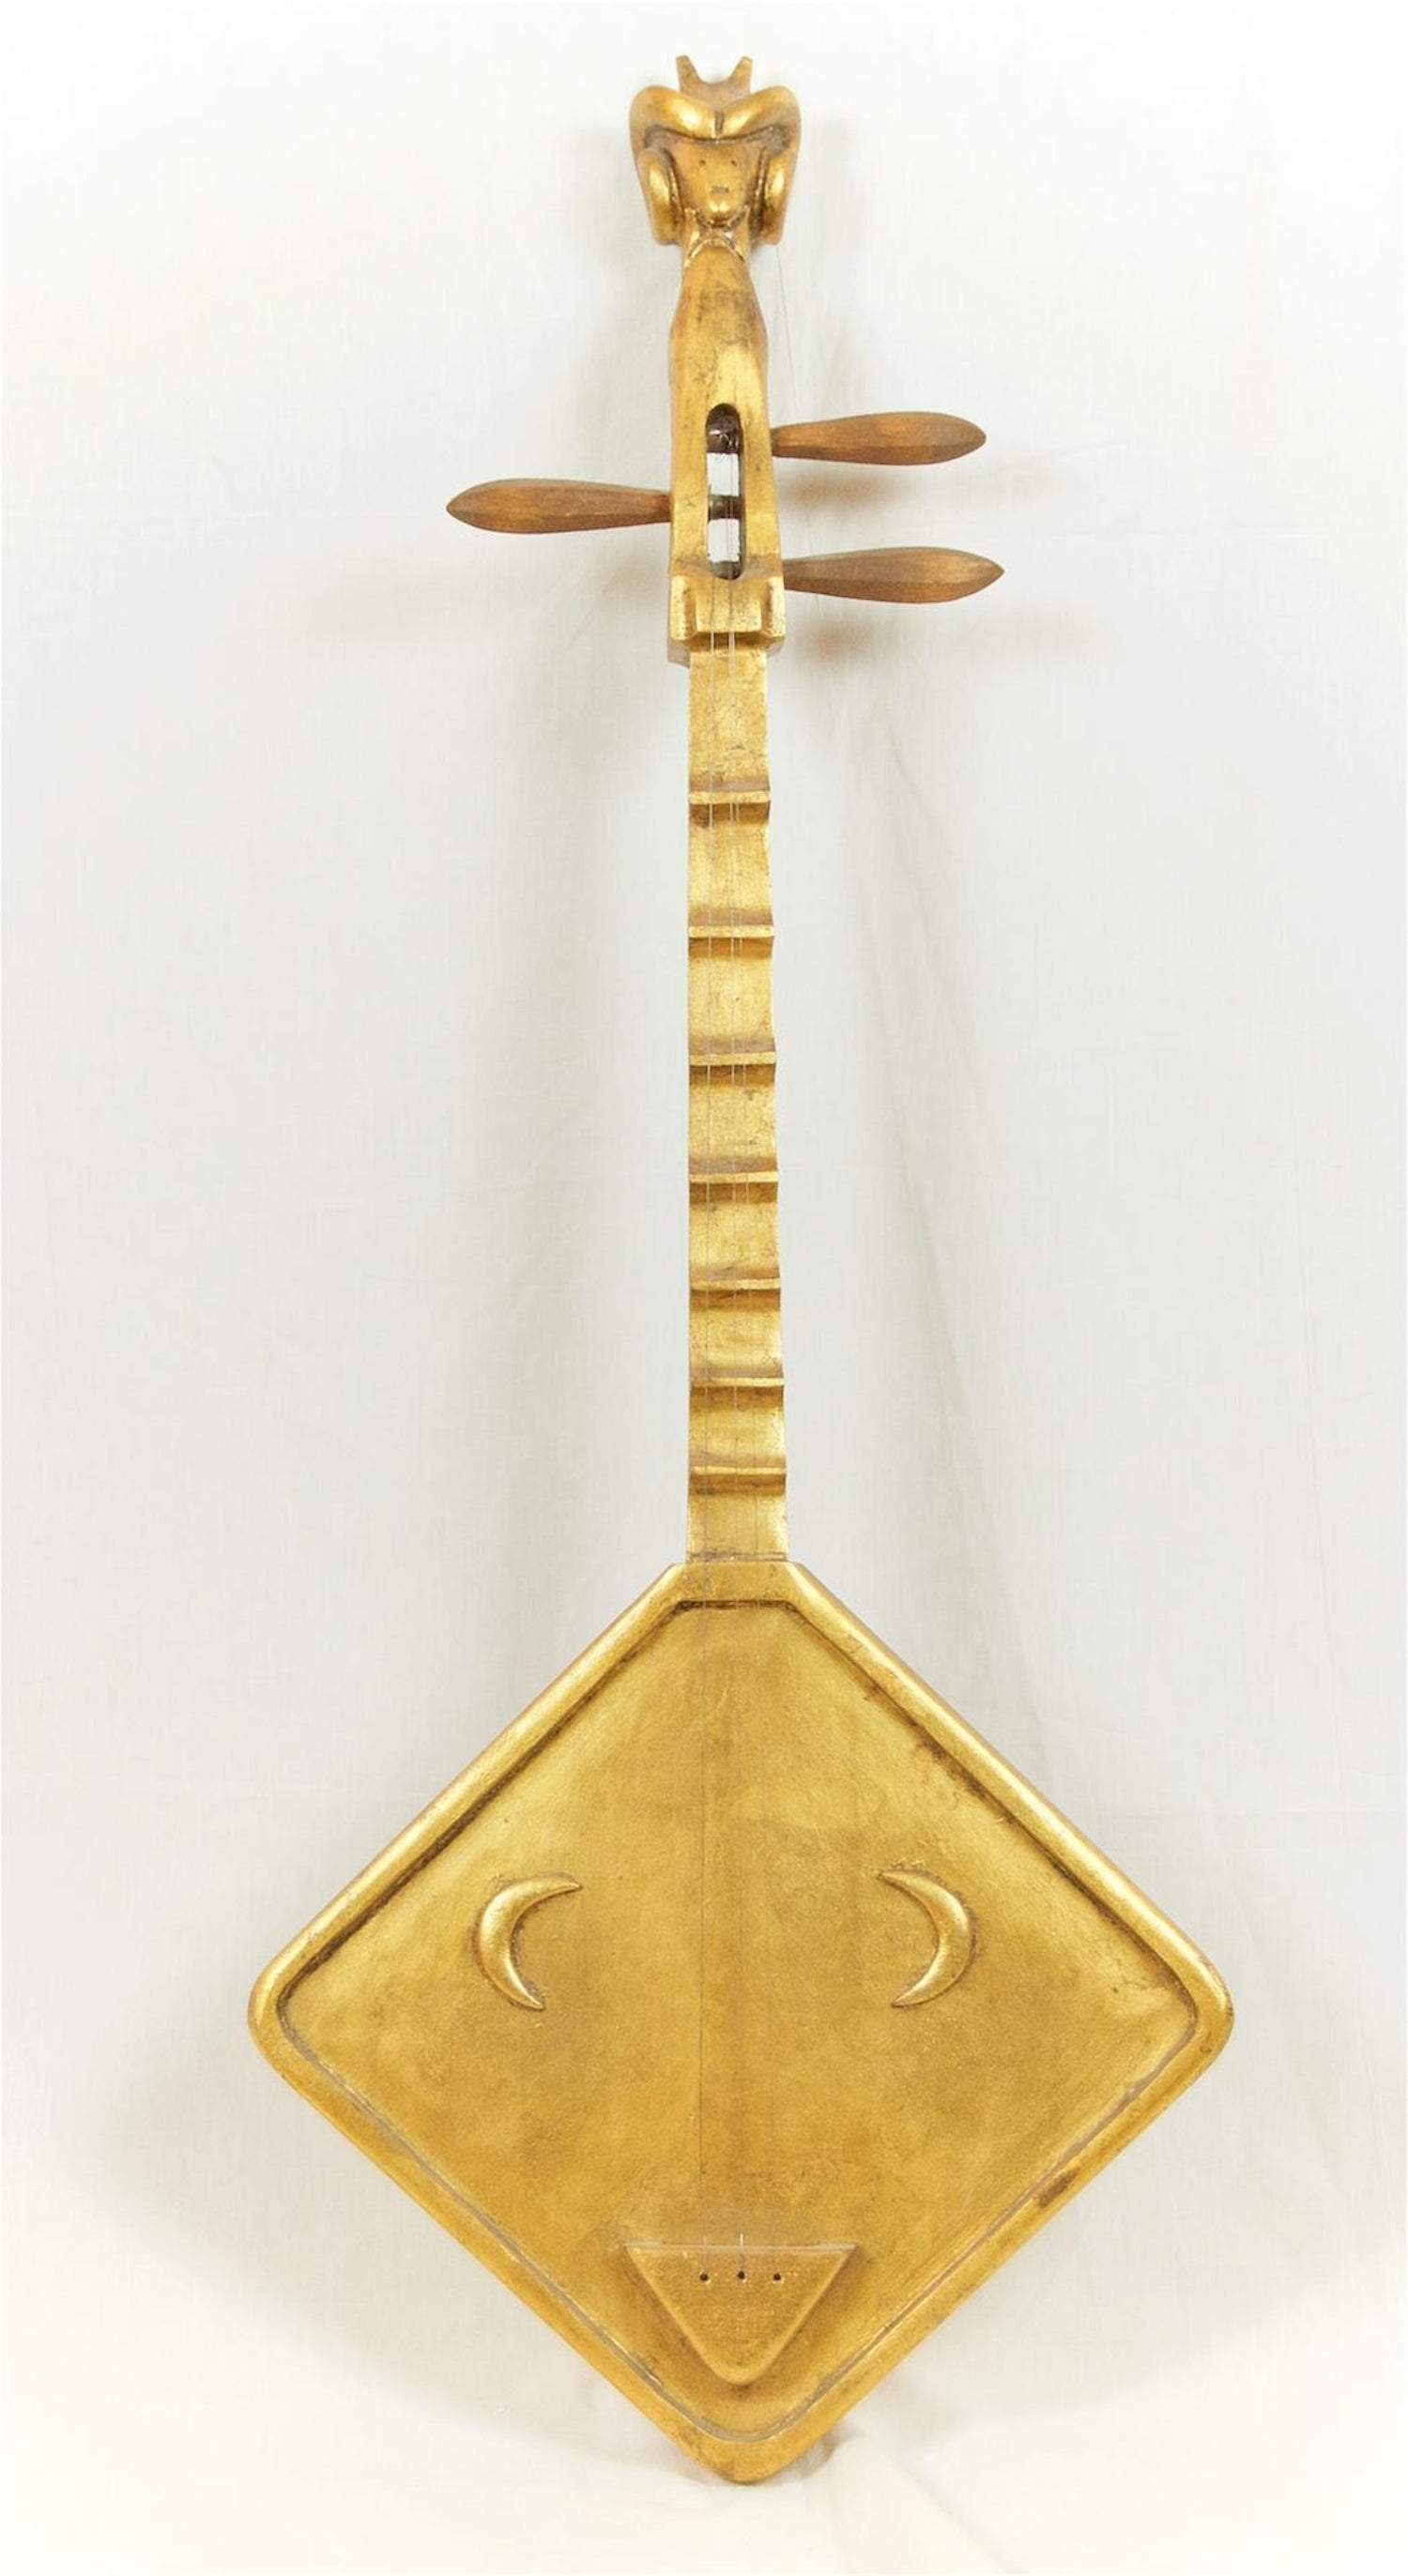 Gilt Decorative String Instrument Wall Hanging For Sale at 1stdibs